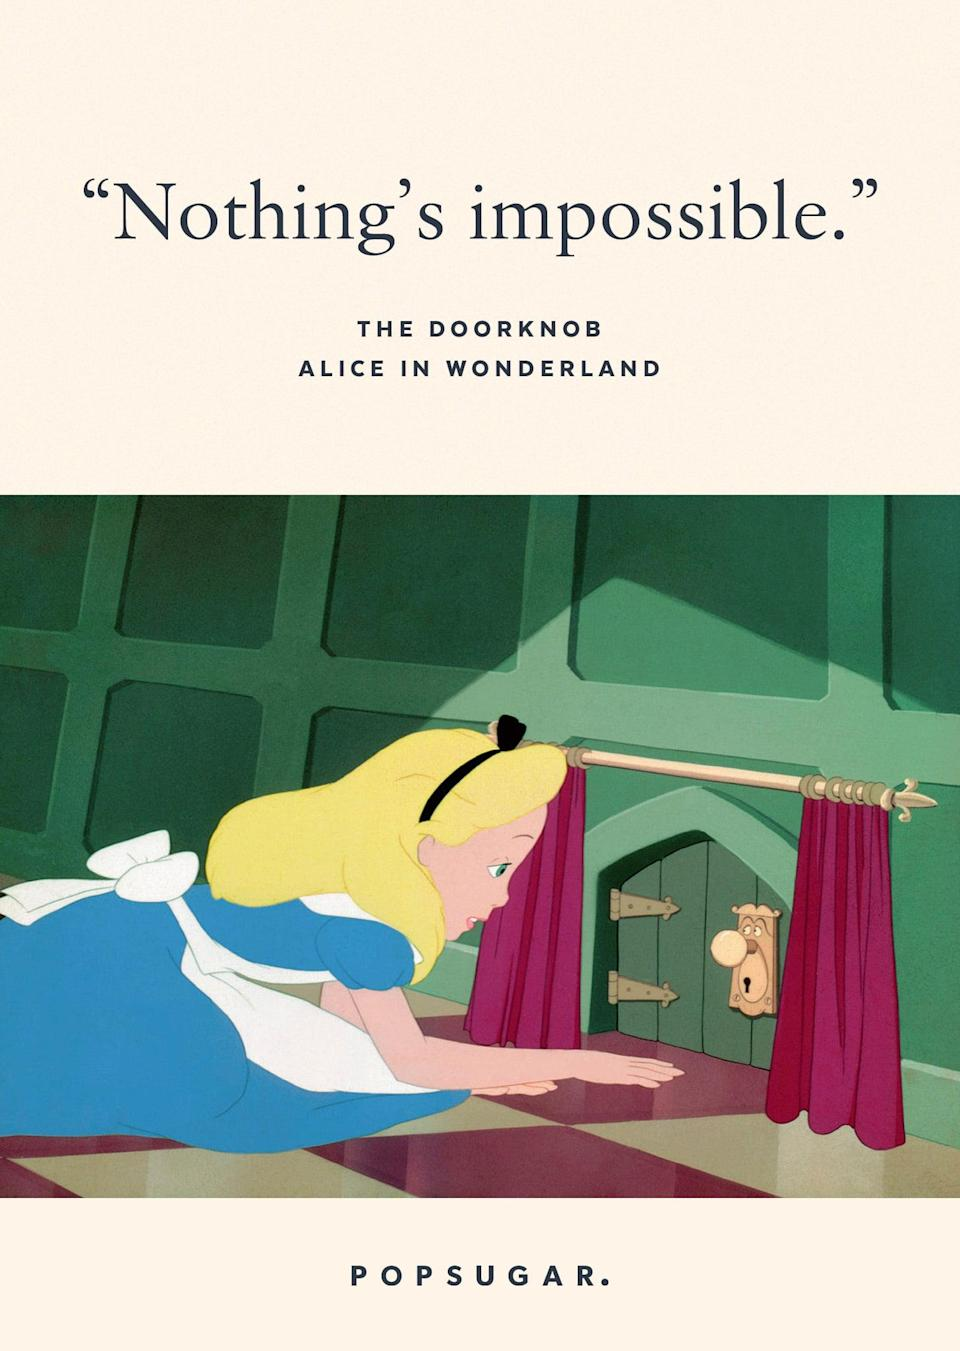 "<p>""Nothing's impossible."" - The Doorknob, <b>Alice in Wonderland</b></p>"